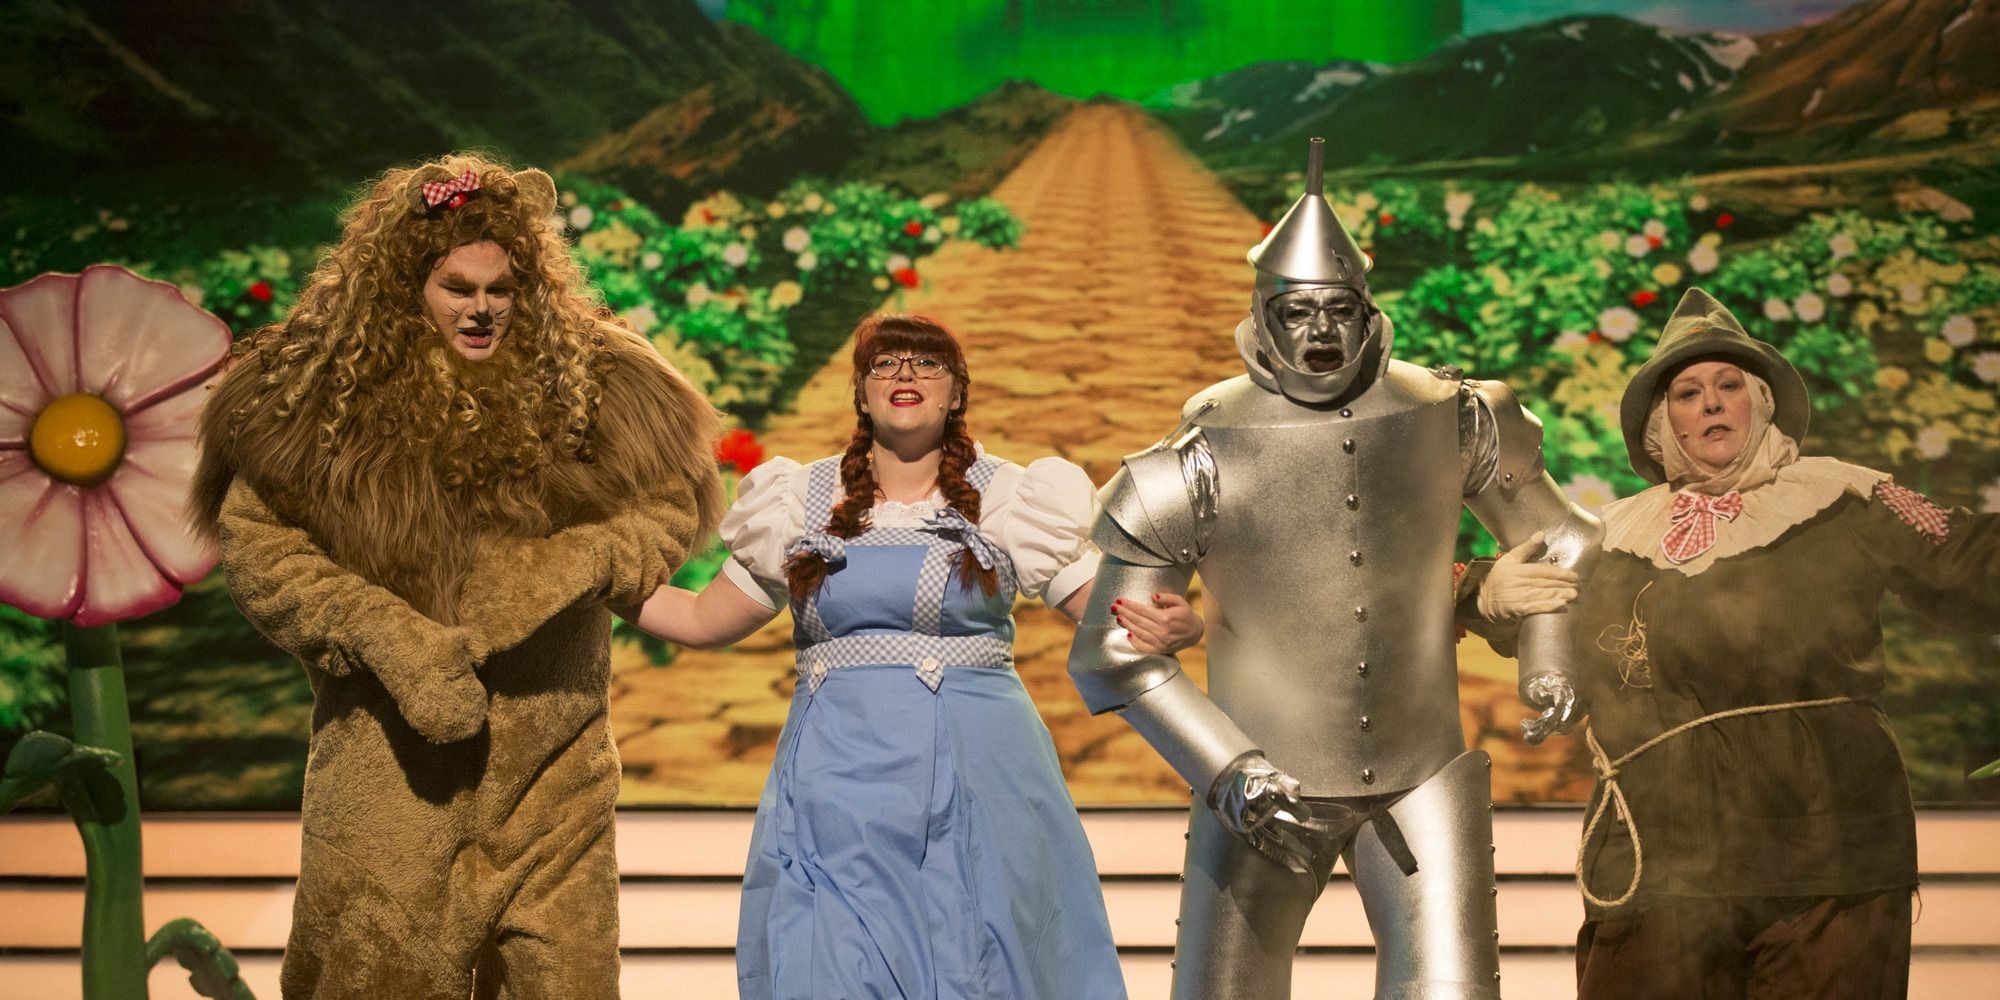 The Chasers (Anne Hegerty, Jenny Ryan, Mark Labbett and Shaun Wallace) perform a medley from the classic musical Wizard Of Oz